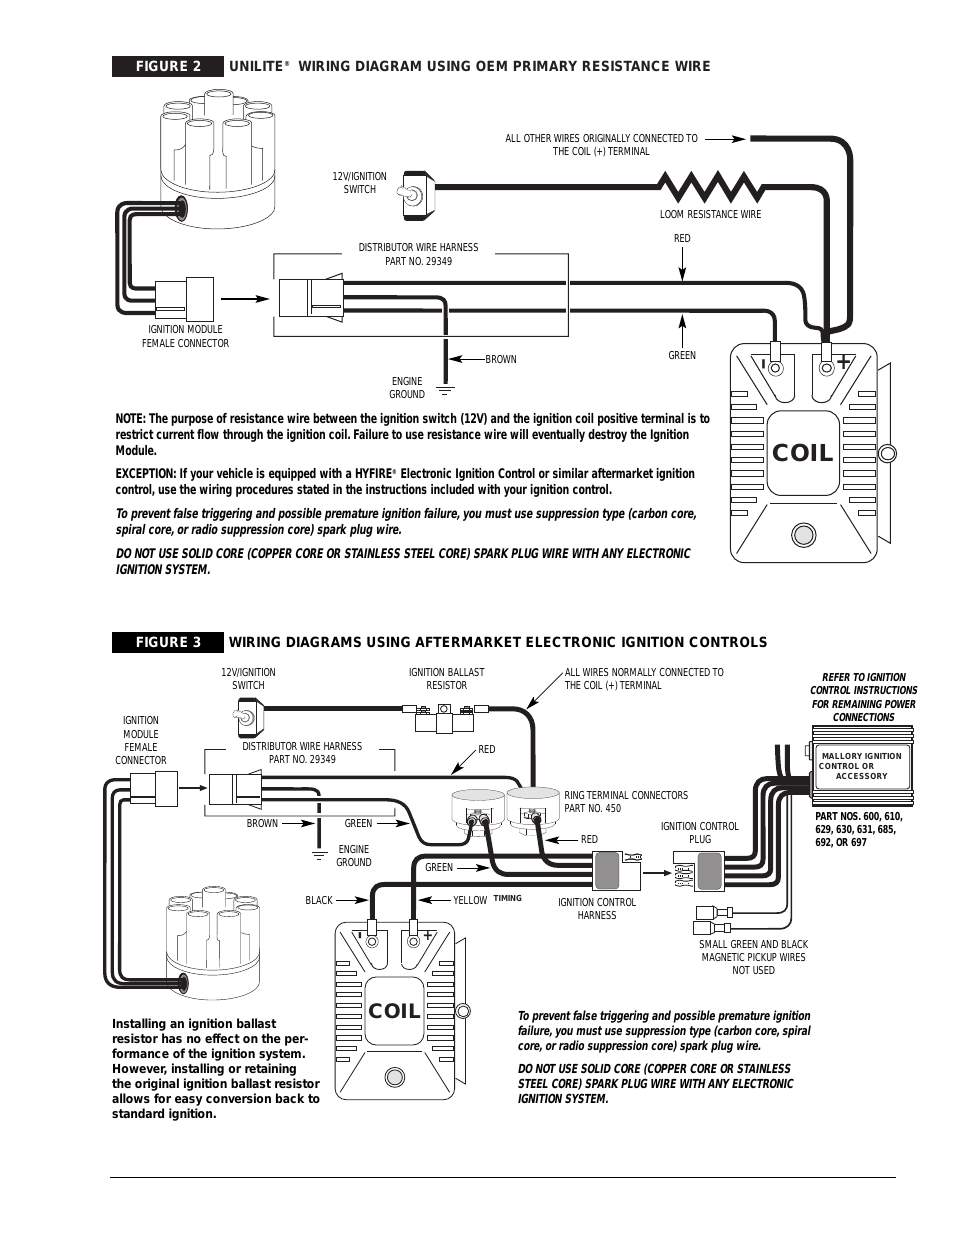 mallory ignition wiring diagram | free wiring diagram mallory ignition wiring diagram mallory ignition wiring diagram 75